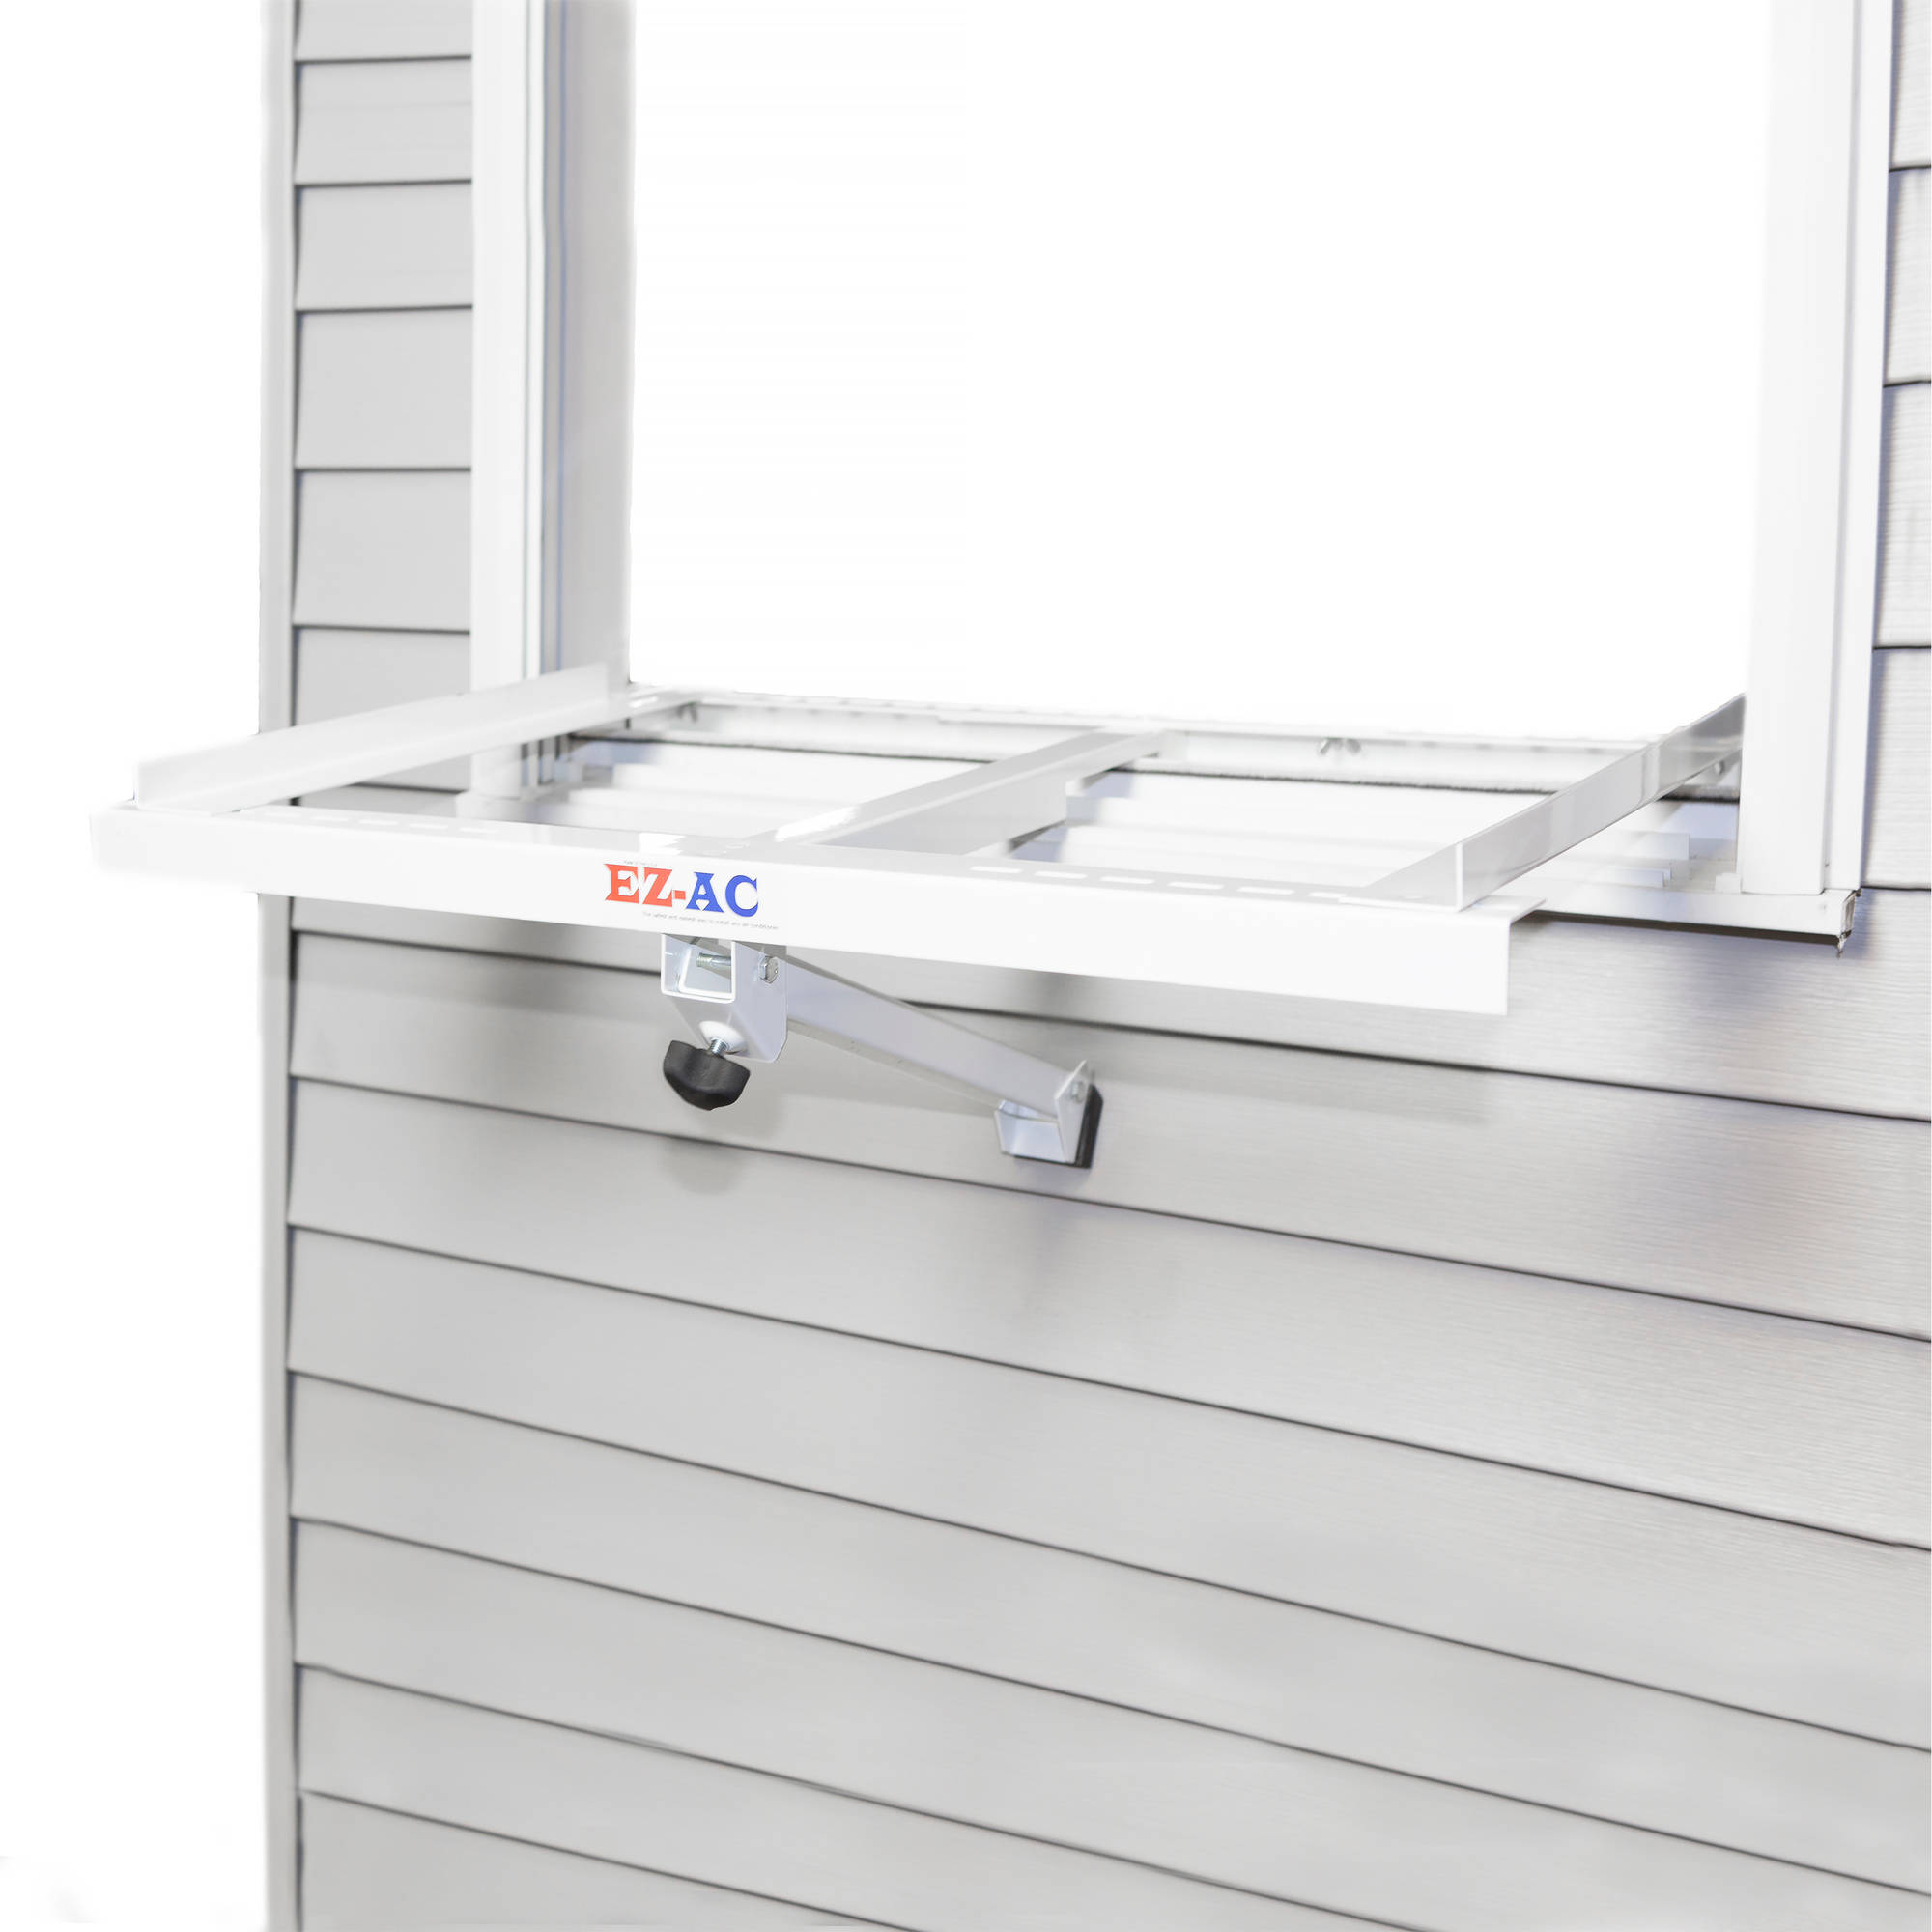 EZ-AC Air Conditioner Support Bracket